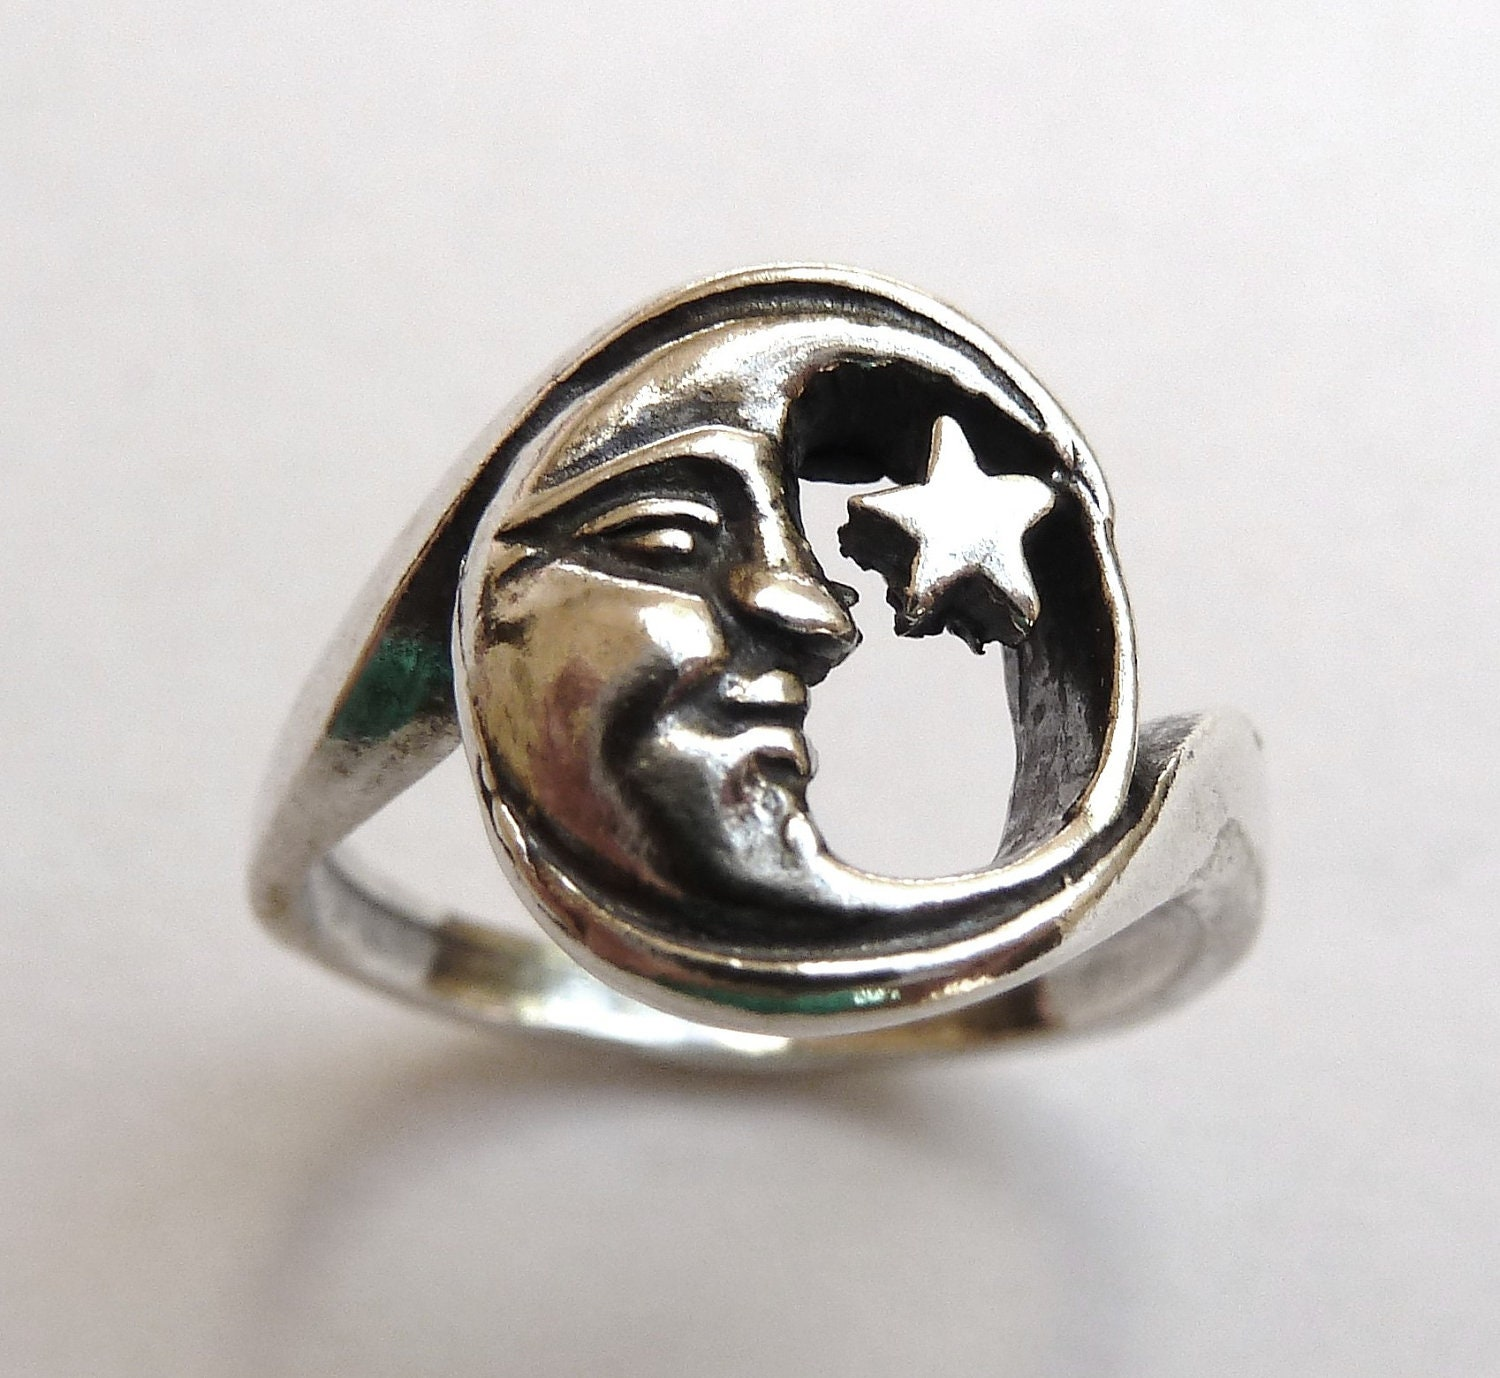 signet rings uk badger silver no sun image wolf moon